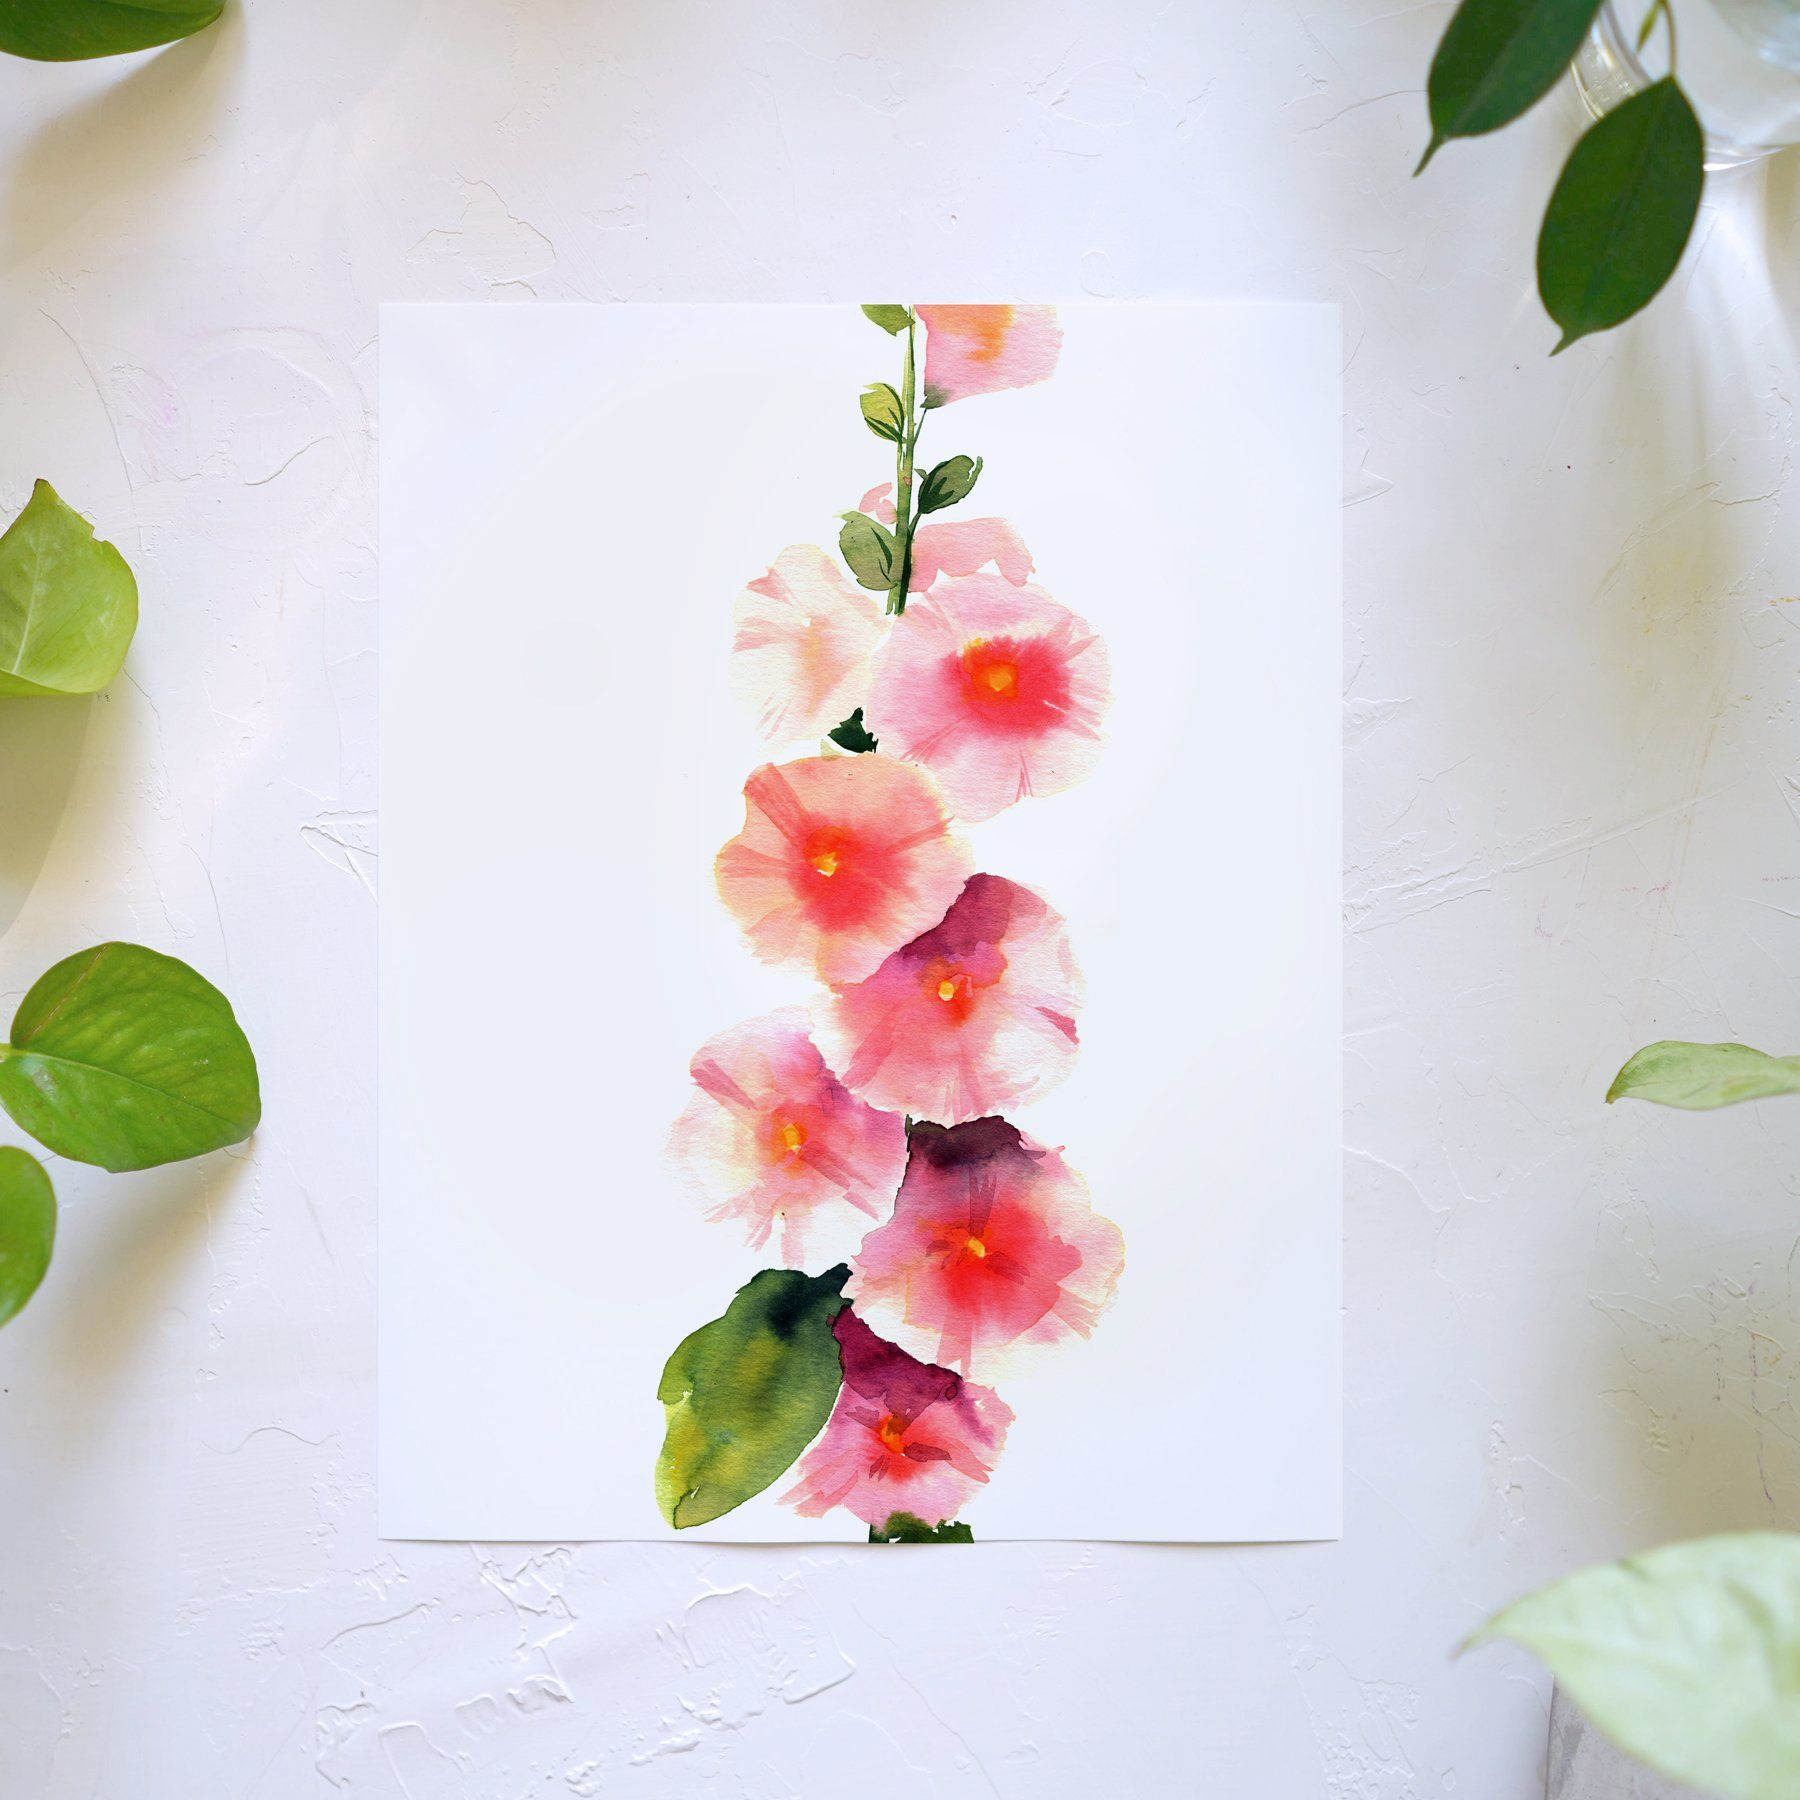 Hollyhock Watercolor Kit In 2020 Watercolor Kit Let S Make Art